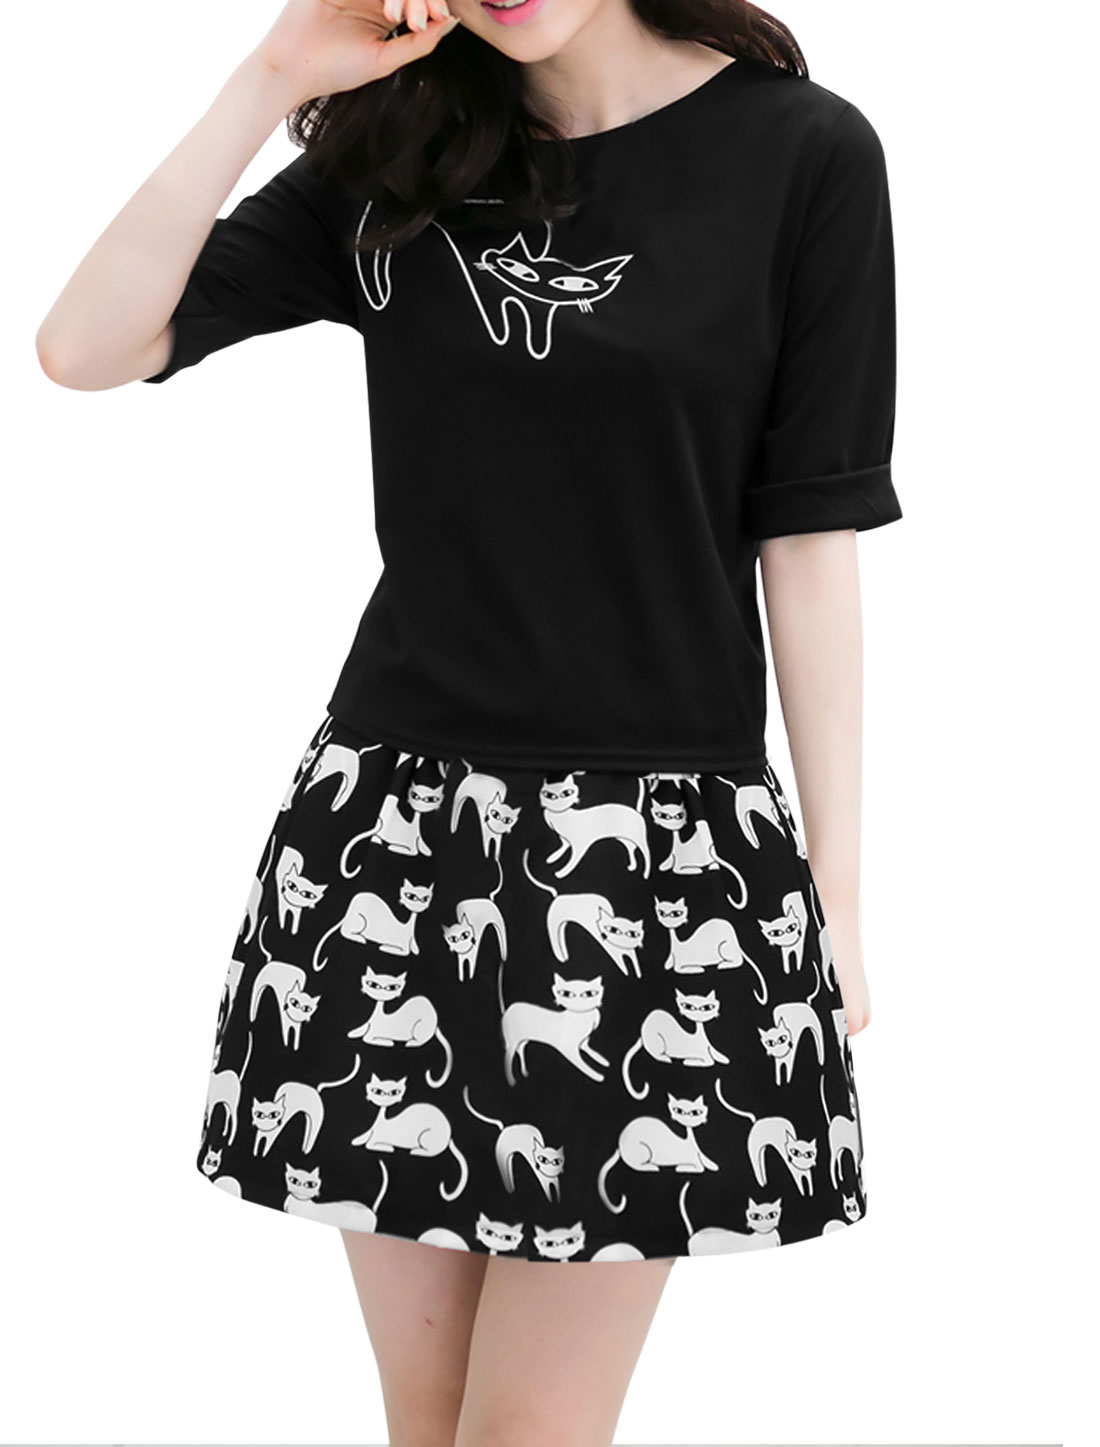 Lady Cat Prints Hidden Zipper Top w Elastic Waist Skirt Black S